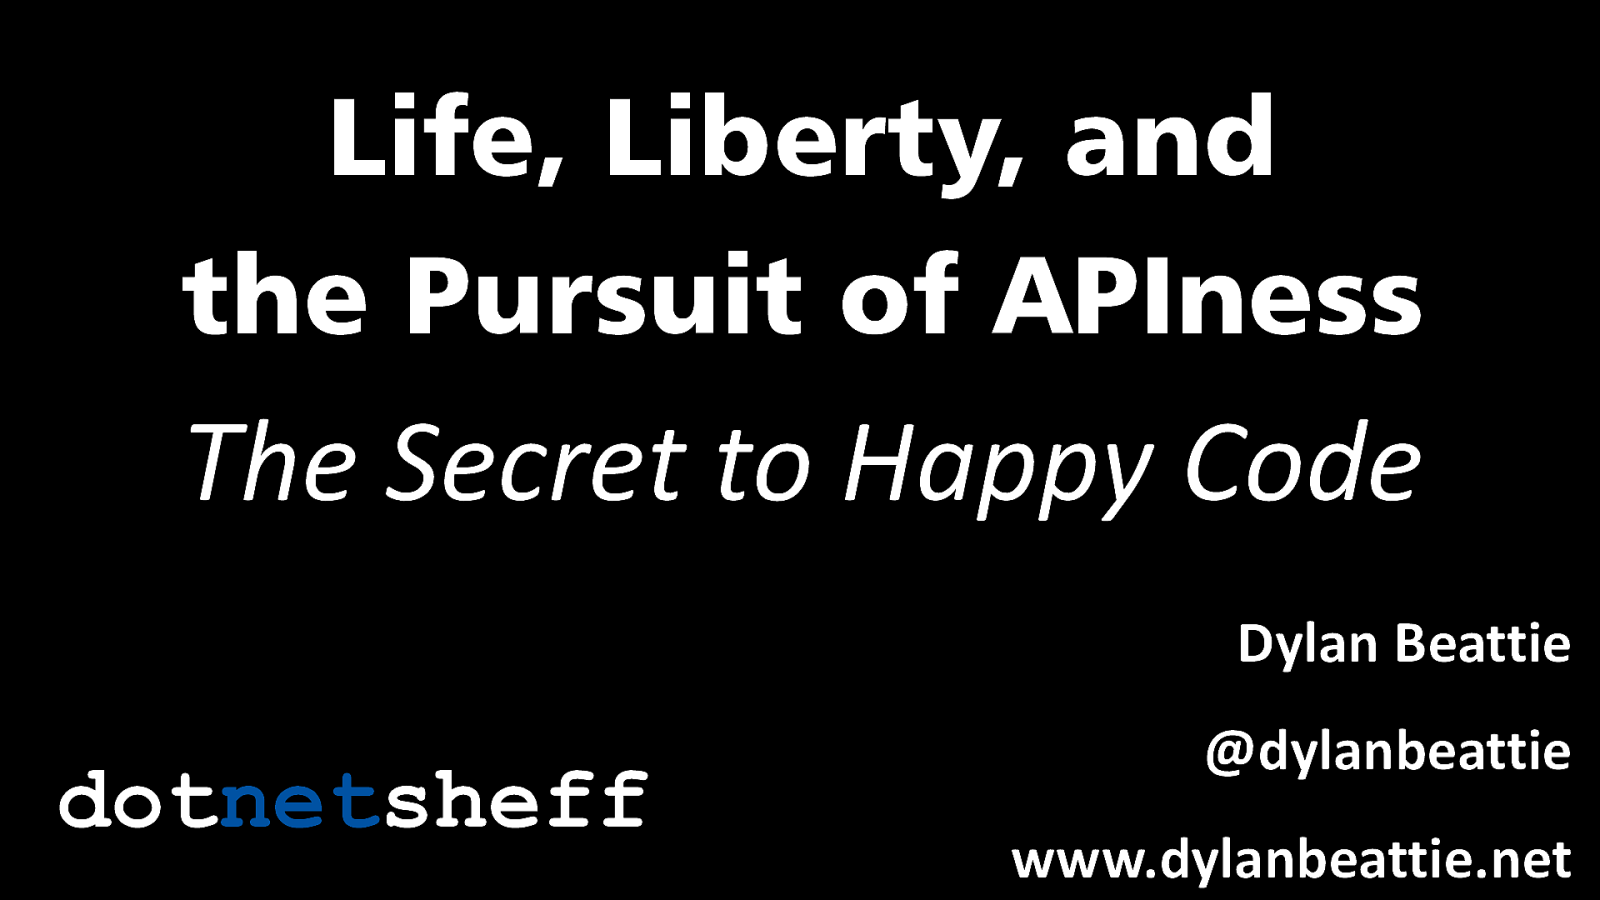 The Pursuit of APIness: The Secret to Happy Code